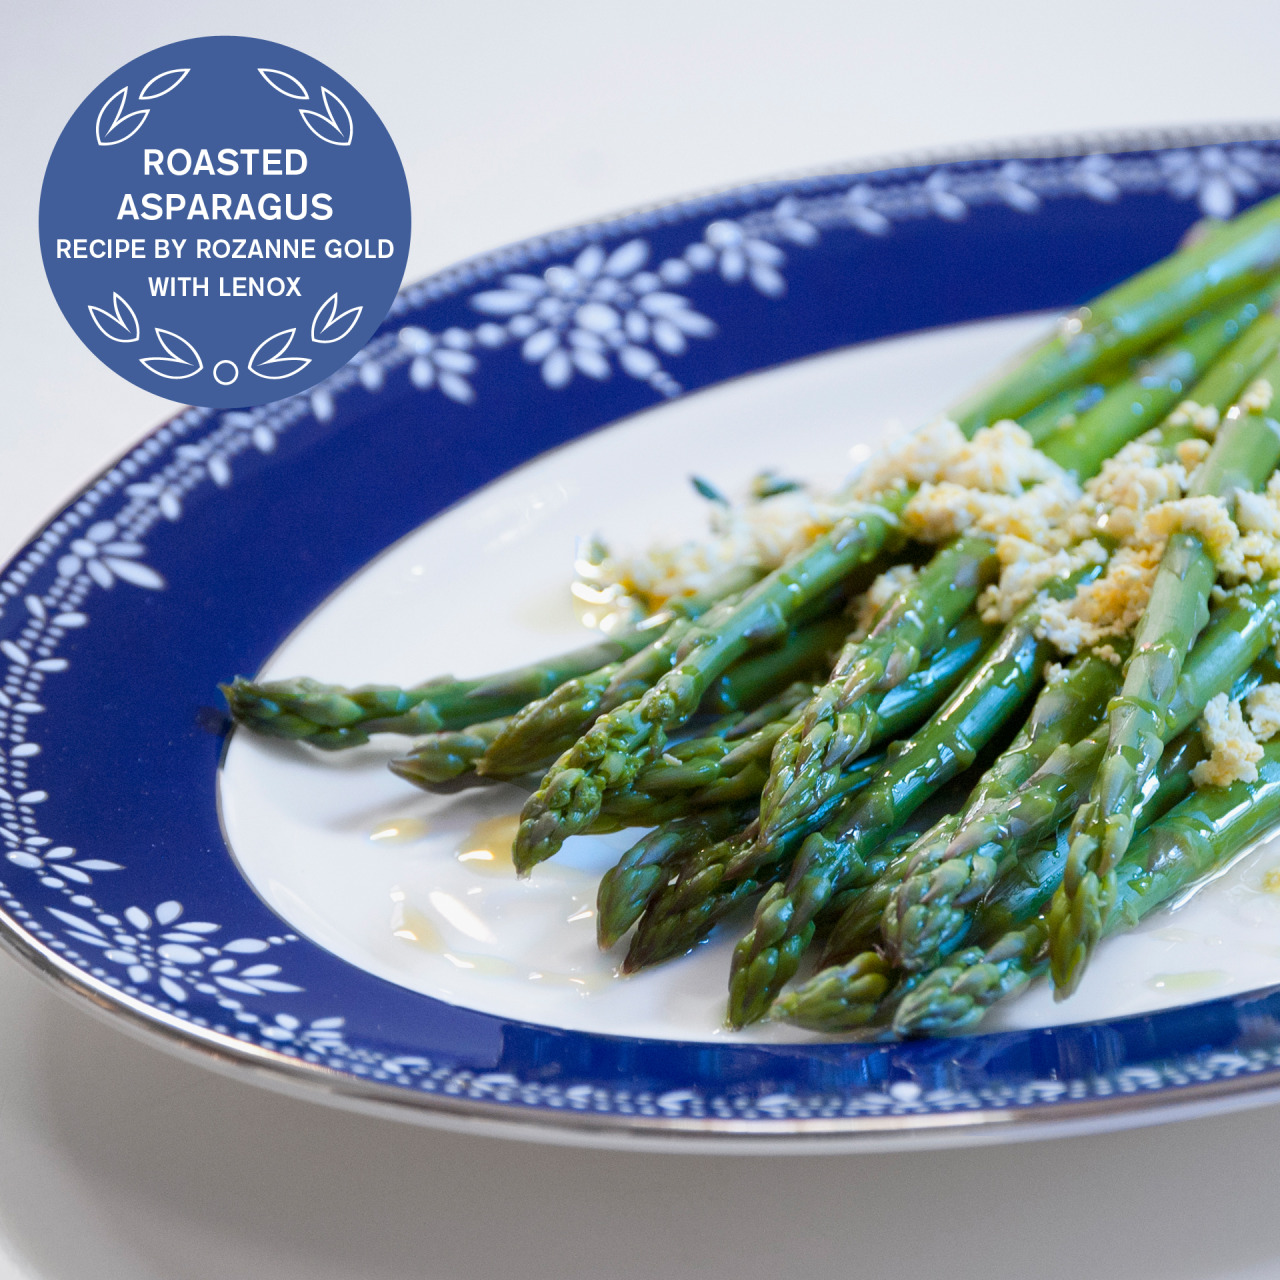 LENOX PASSOVER 2013 ROASTED ASPARAGUS WITH FRESH THYME  by Rozanne Gold Roasting asparagus at a high temperature caramelizes their natural sugars and develops their grassy flavor.  I love the simple melding of flavors – fresh thyme, and garlic, bound together with chopped egg.  - 2 pounds asparagus - 1 medium clove garlic - 3 tablespoons extra-virgin olive oil, plus more for drizzling - 1 bunch fresh thyme - 2 hard-boiled eggs Preheat oven to 475 degrees.  Finely chop garlic and add to olive oil.  Trim asparagus and place in a large bowl.  Add garlic oil, 1 teaspoon kosher salt and pepper and toss well.  Place asparagus on rimmed baking sheet.  Scatter half the fresh thyme sprigs over and around the asparagus.    Roast 10 minutes, shaking pan once or twice, until tender (do not overcook.)   Transfer asparagus to a warm platter.  Chop eggs very fine and scatter over asparagus. Drizzle with additional olive and garnish with fresh thyme.     SERVES 8 Featured Product: Marchesa Empire Pearl Indigo Oval Platter (#826276A) Lenox